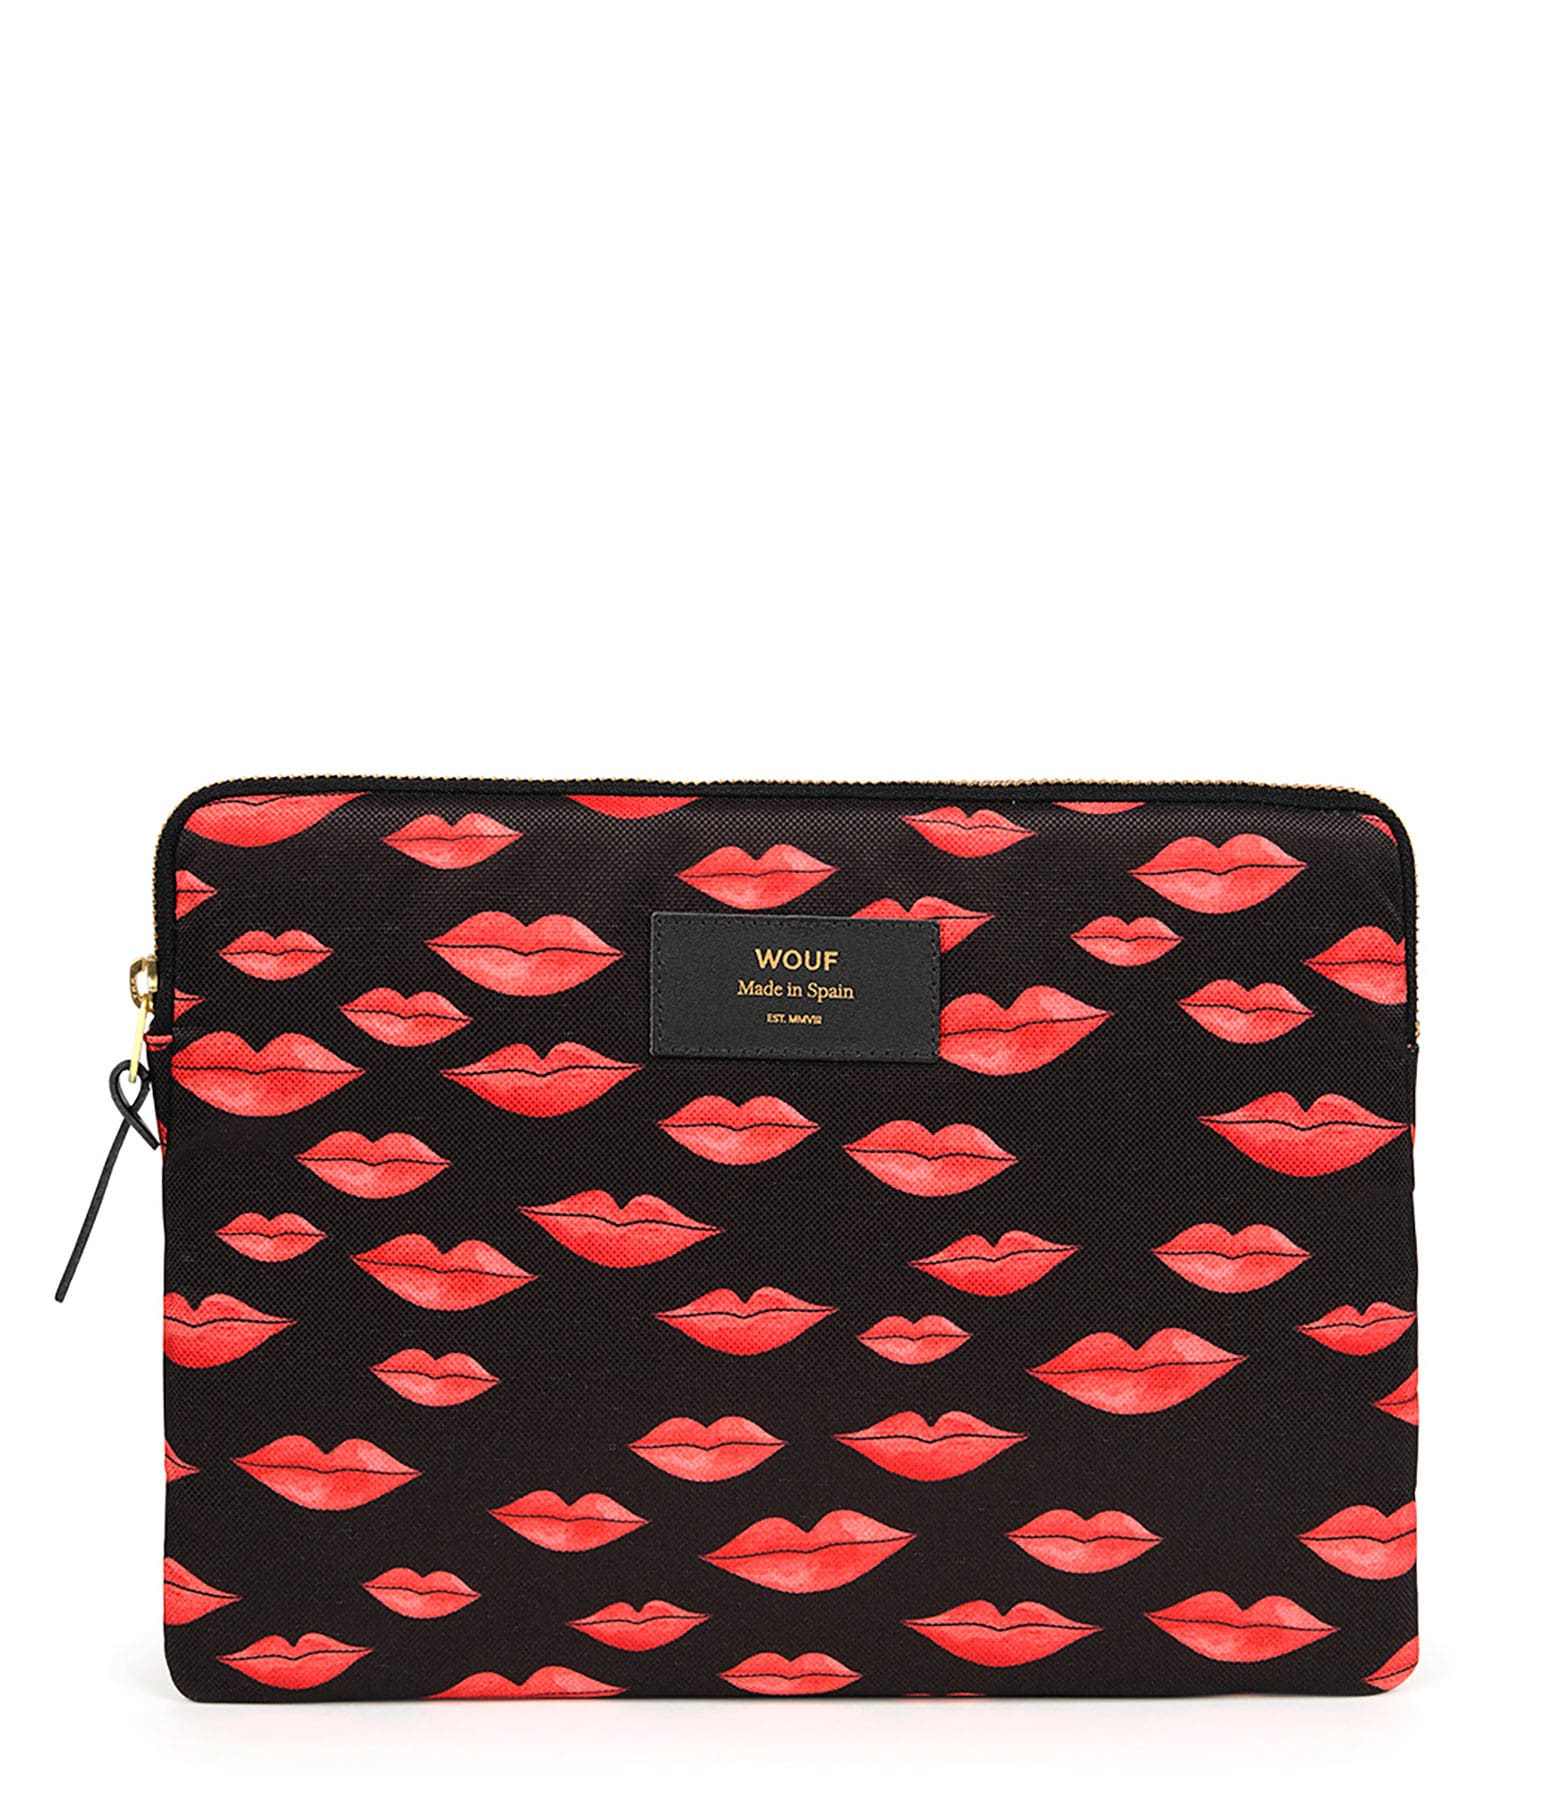 WOUF - Housse Ipad Beso